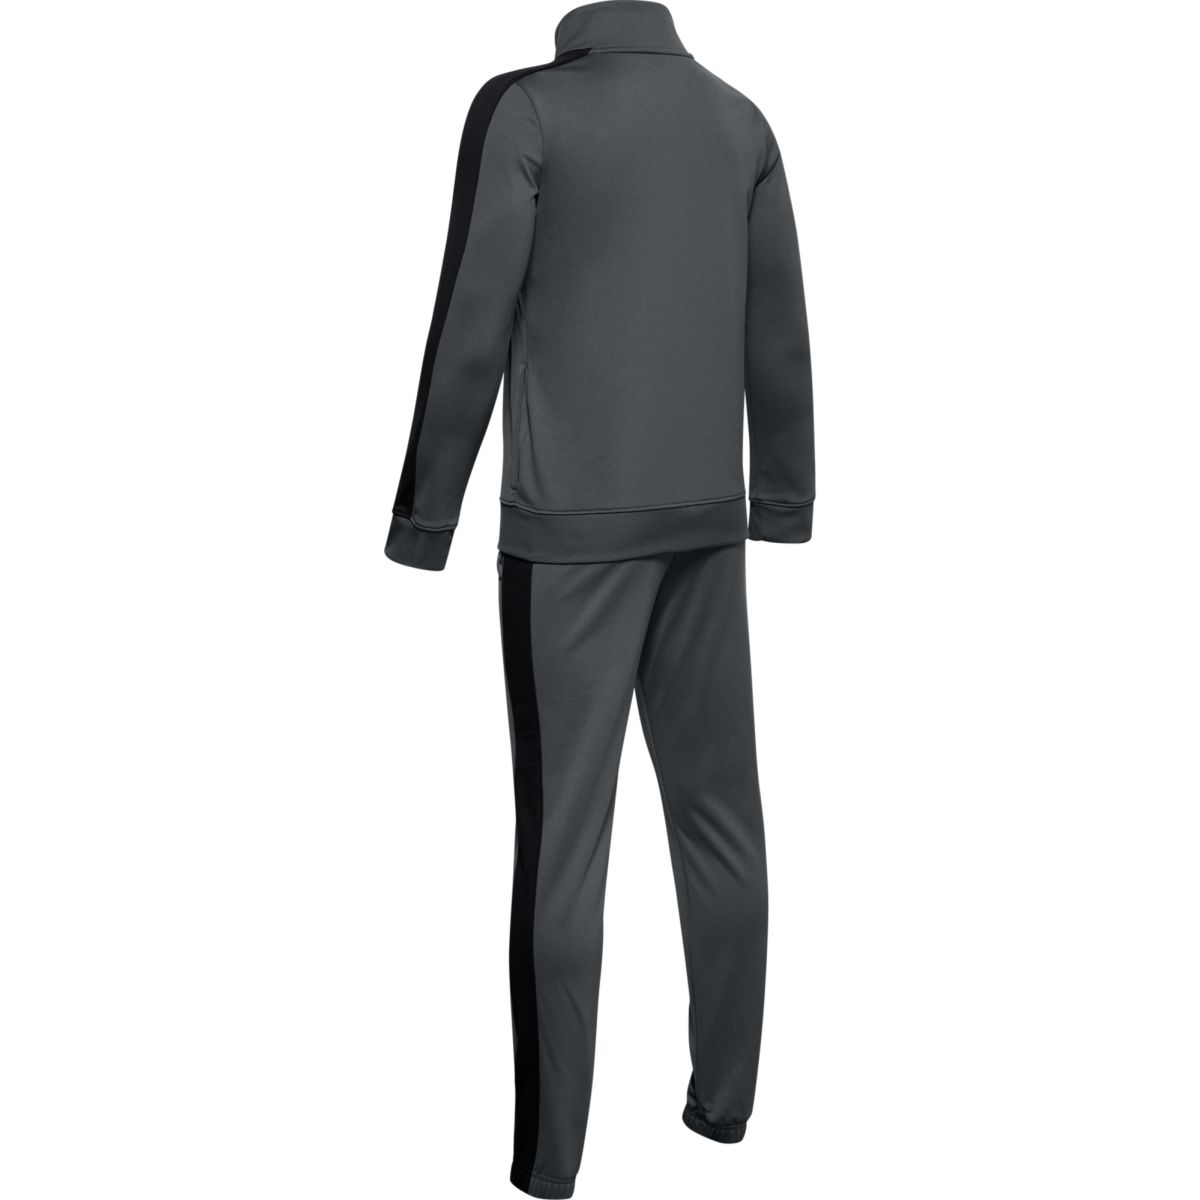 UA Knit Track Suit-GRY